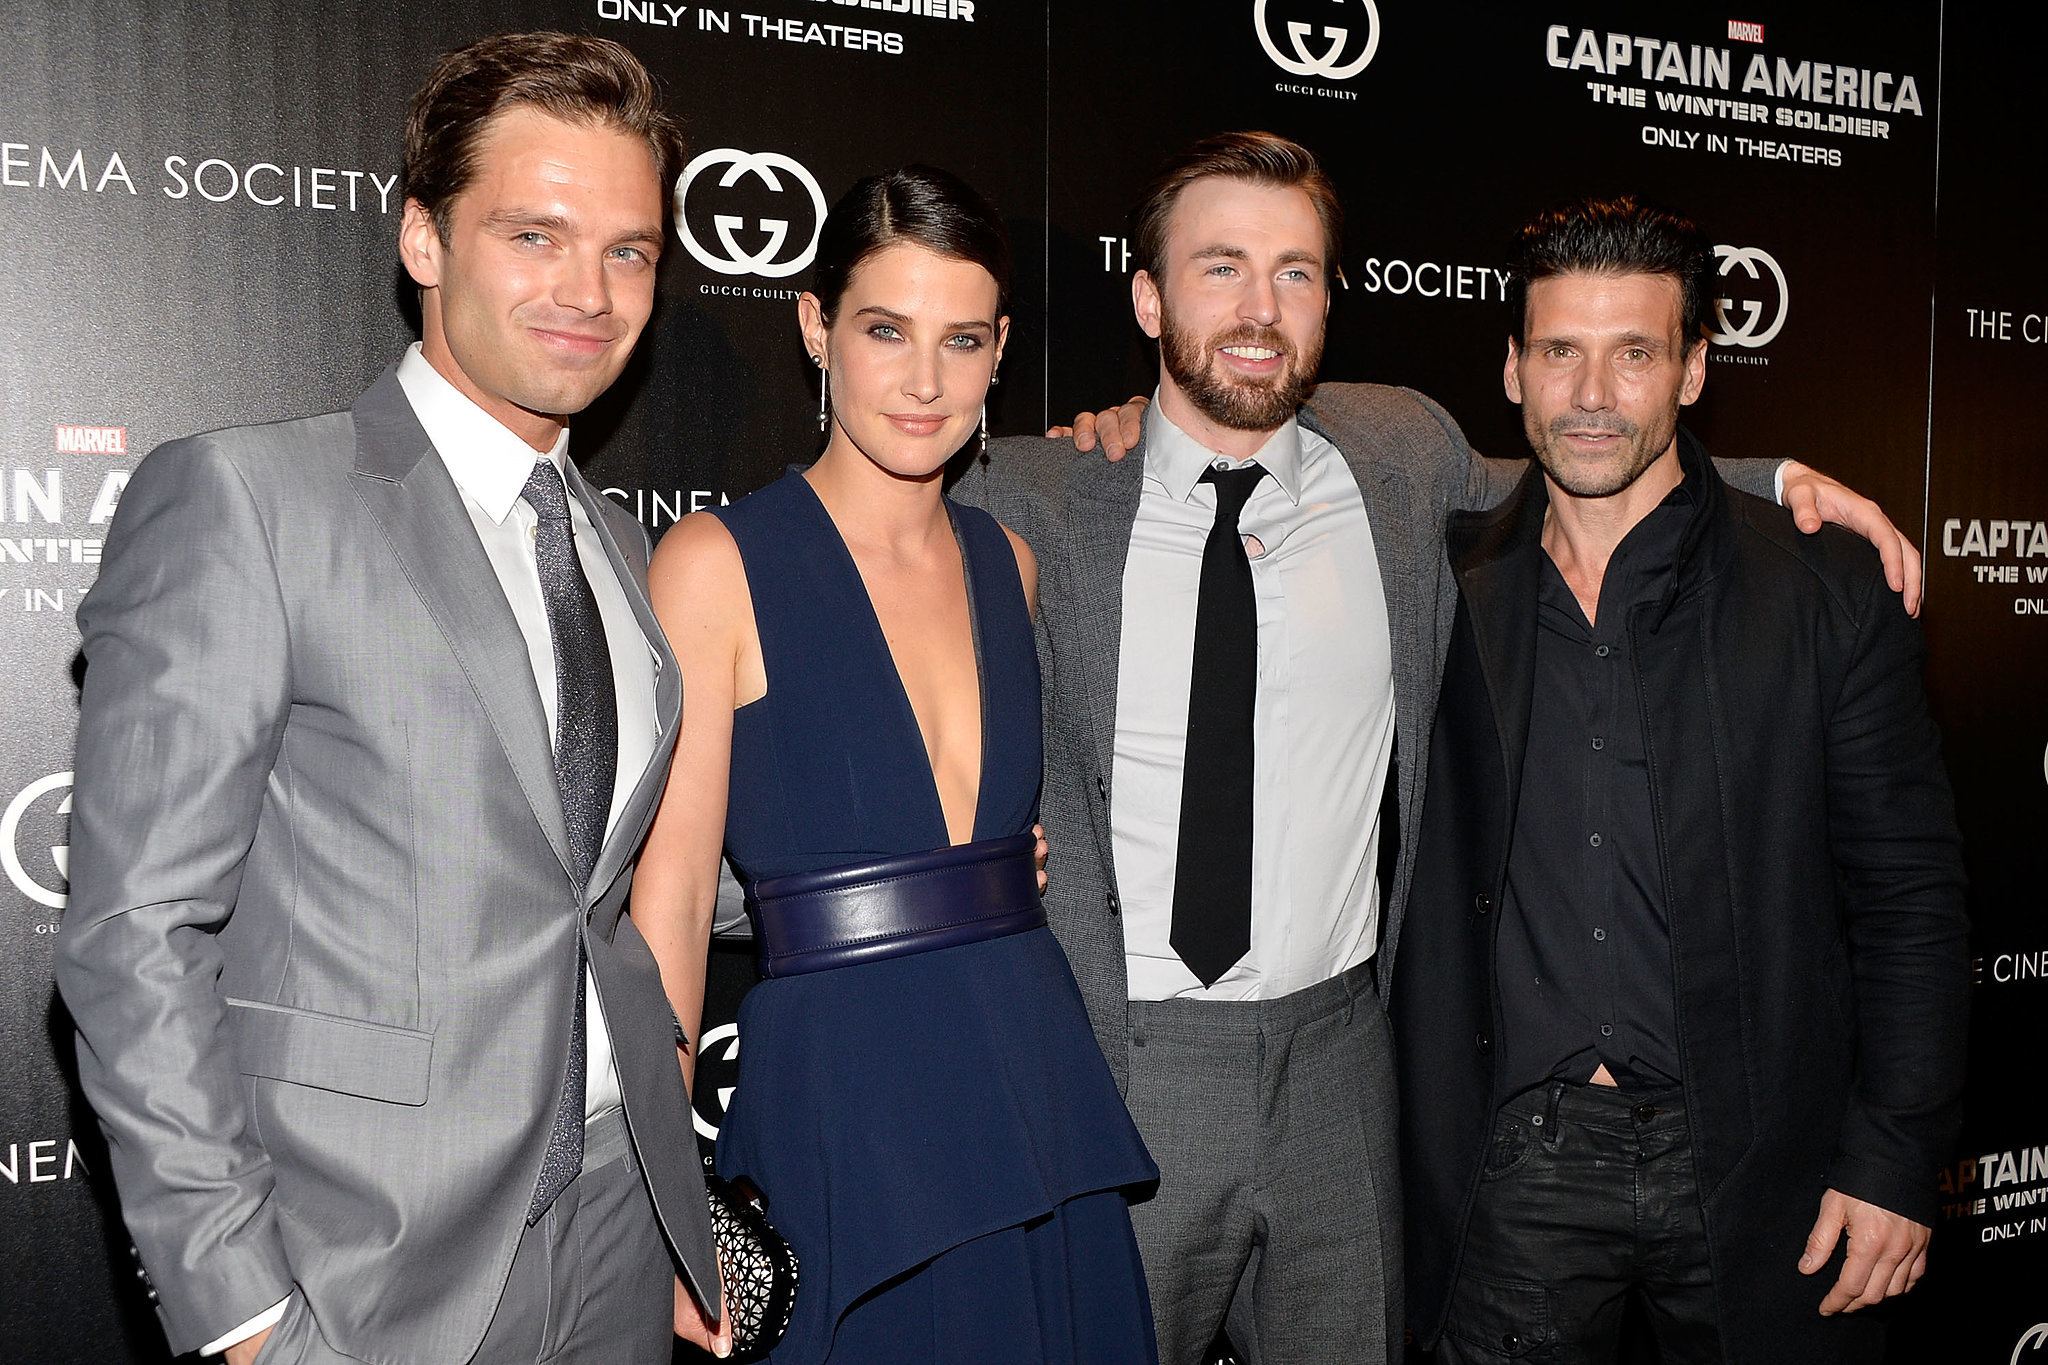 SEBASTIAN STAN Cobie-linked-up-her-costars-Sebastian-Stan-Chris-Evans